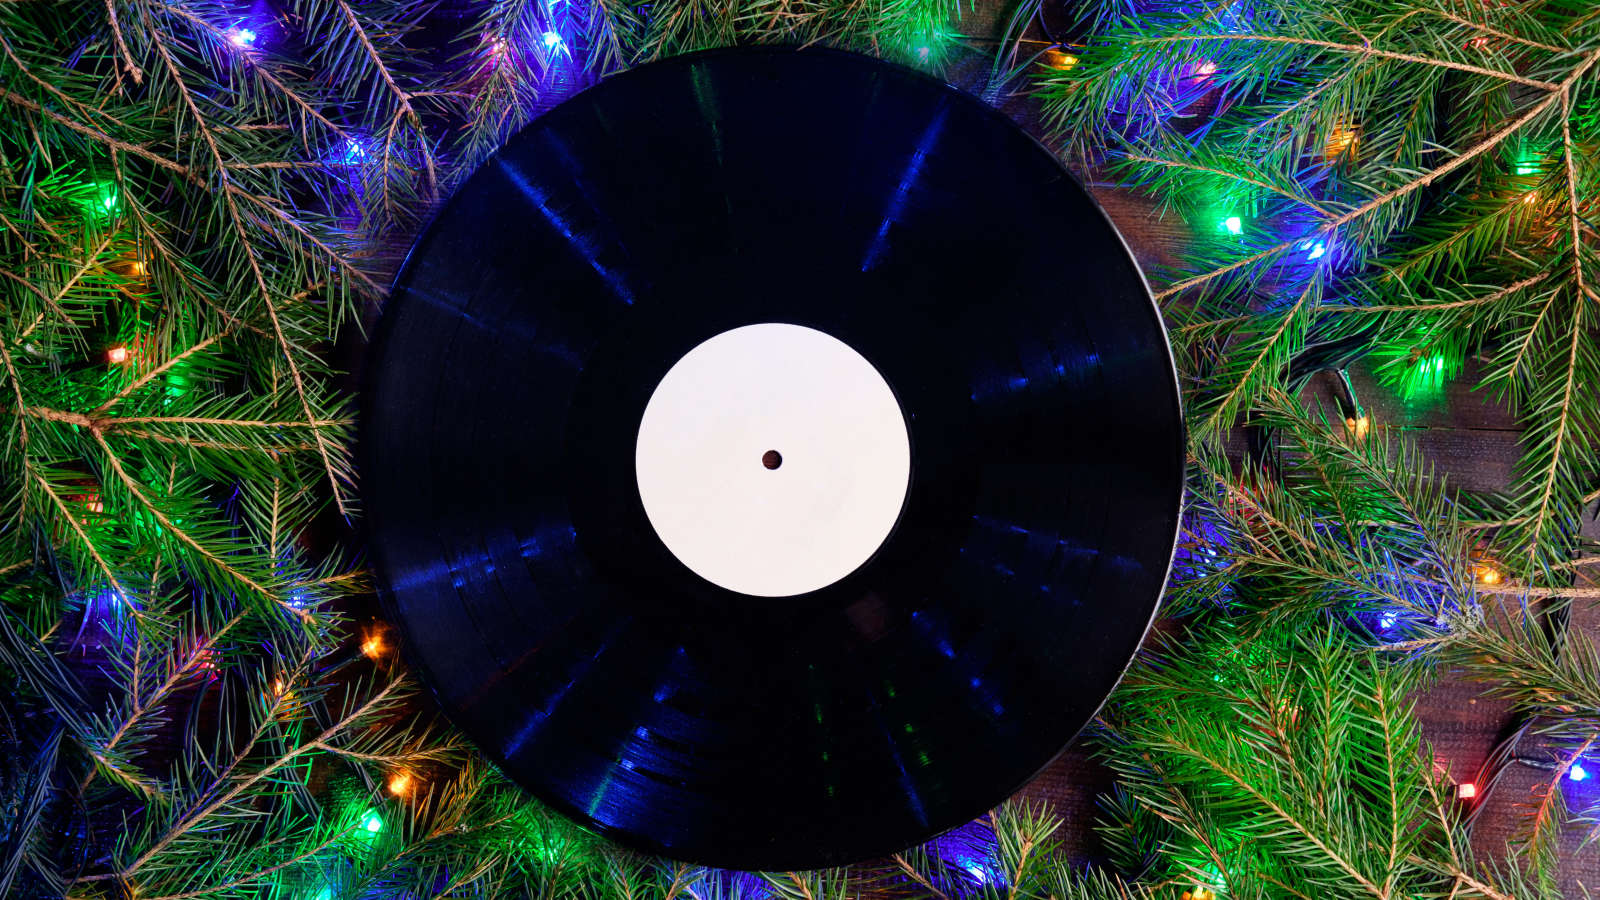 Add Our Favorite Tracks to Your Holiday Playlist